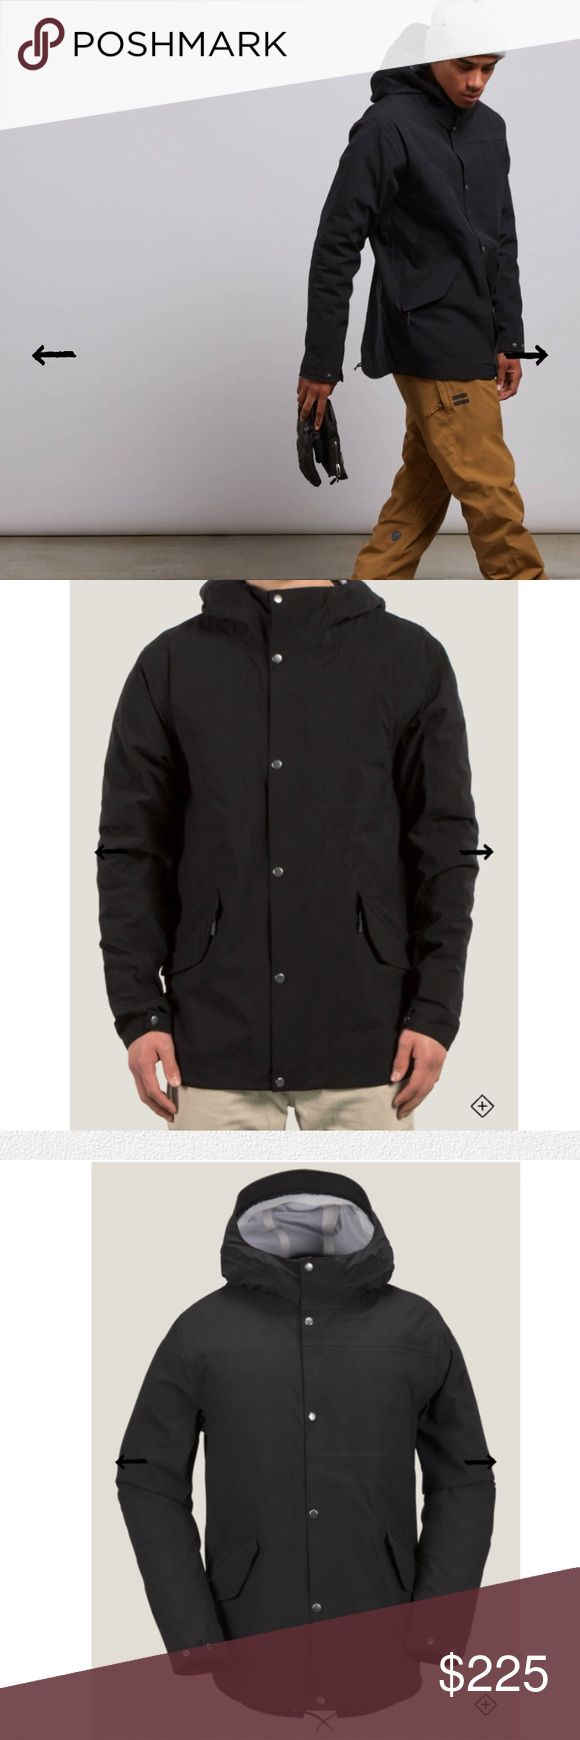 Volcom Lane TDS Parka Brand new - tags on! Material description in final picture. Perfect for cold weather layering. Men's snow parka with infrared thermal panels with down fill to strategically cycle body warmth. 4-way stretch for maximum mobility. Zippered vents release heat for quick cool downs. Droptail fit for extended coverage. 10000MM weather coating. Duck down fill. Padded lining. Hidden zippered chest pocket. Zipper features built in whistle. Shields rain and snow. Listed on…